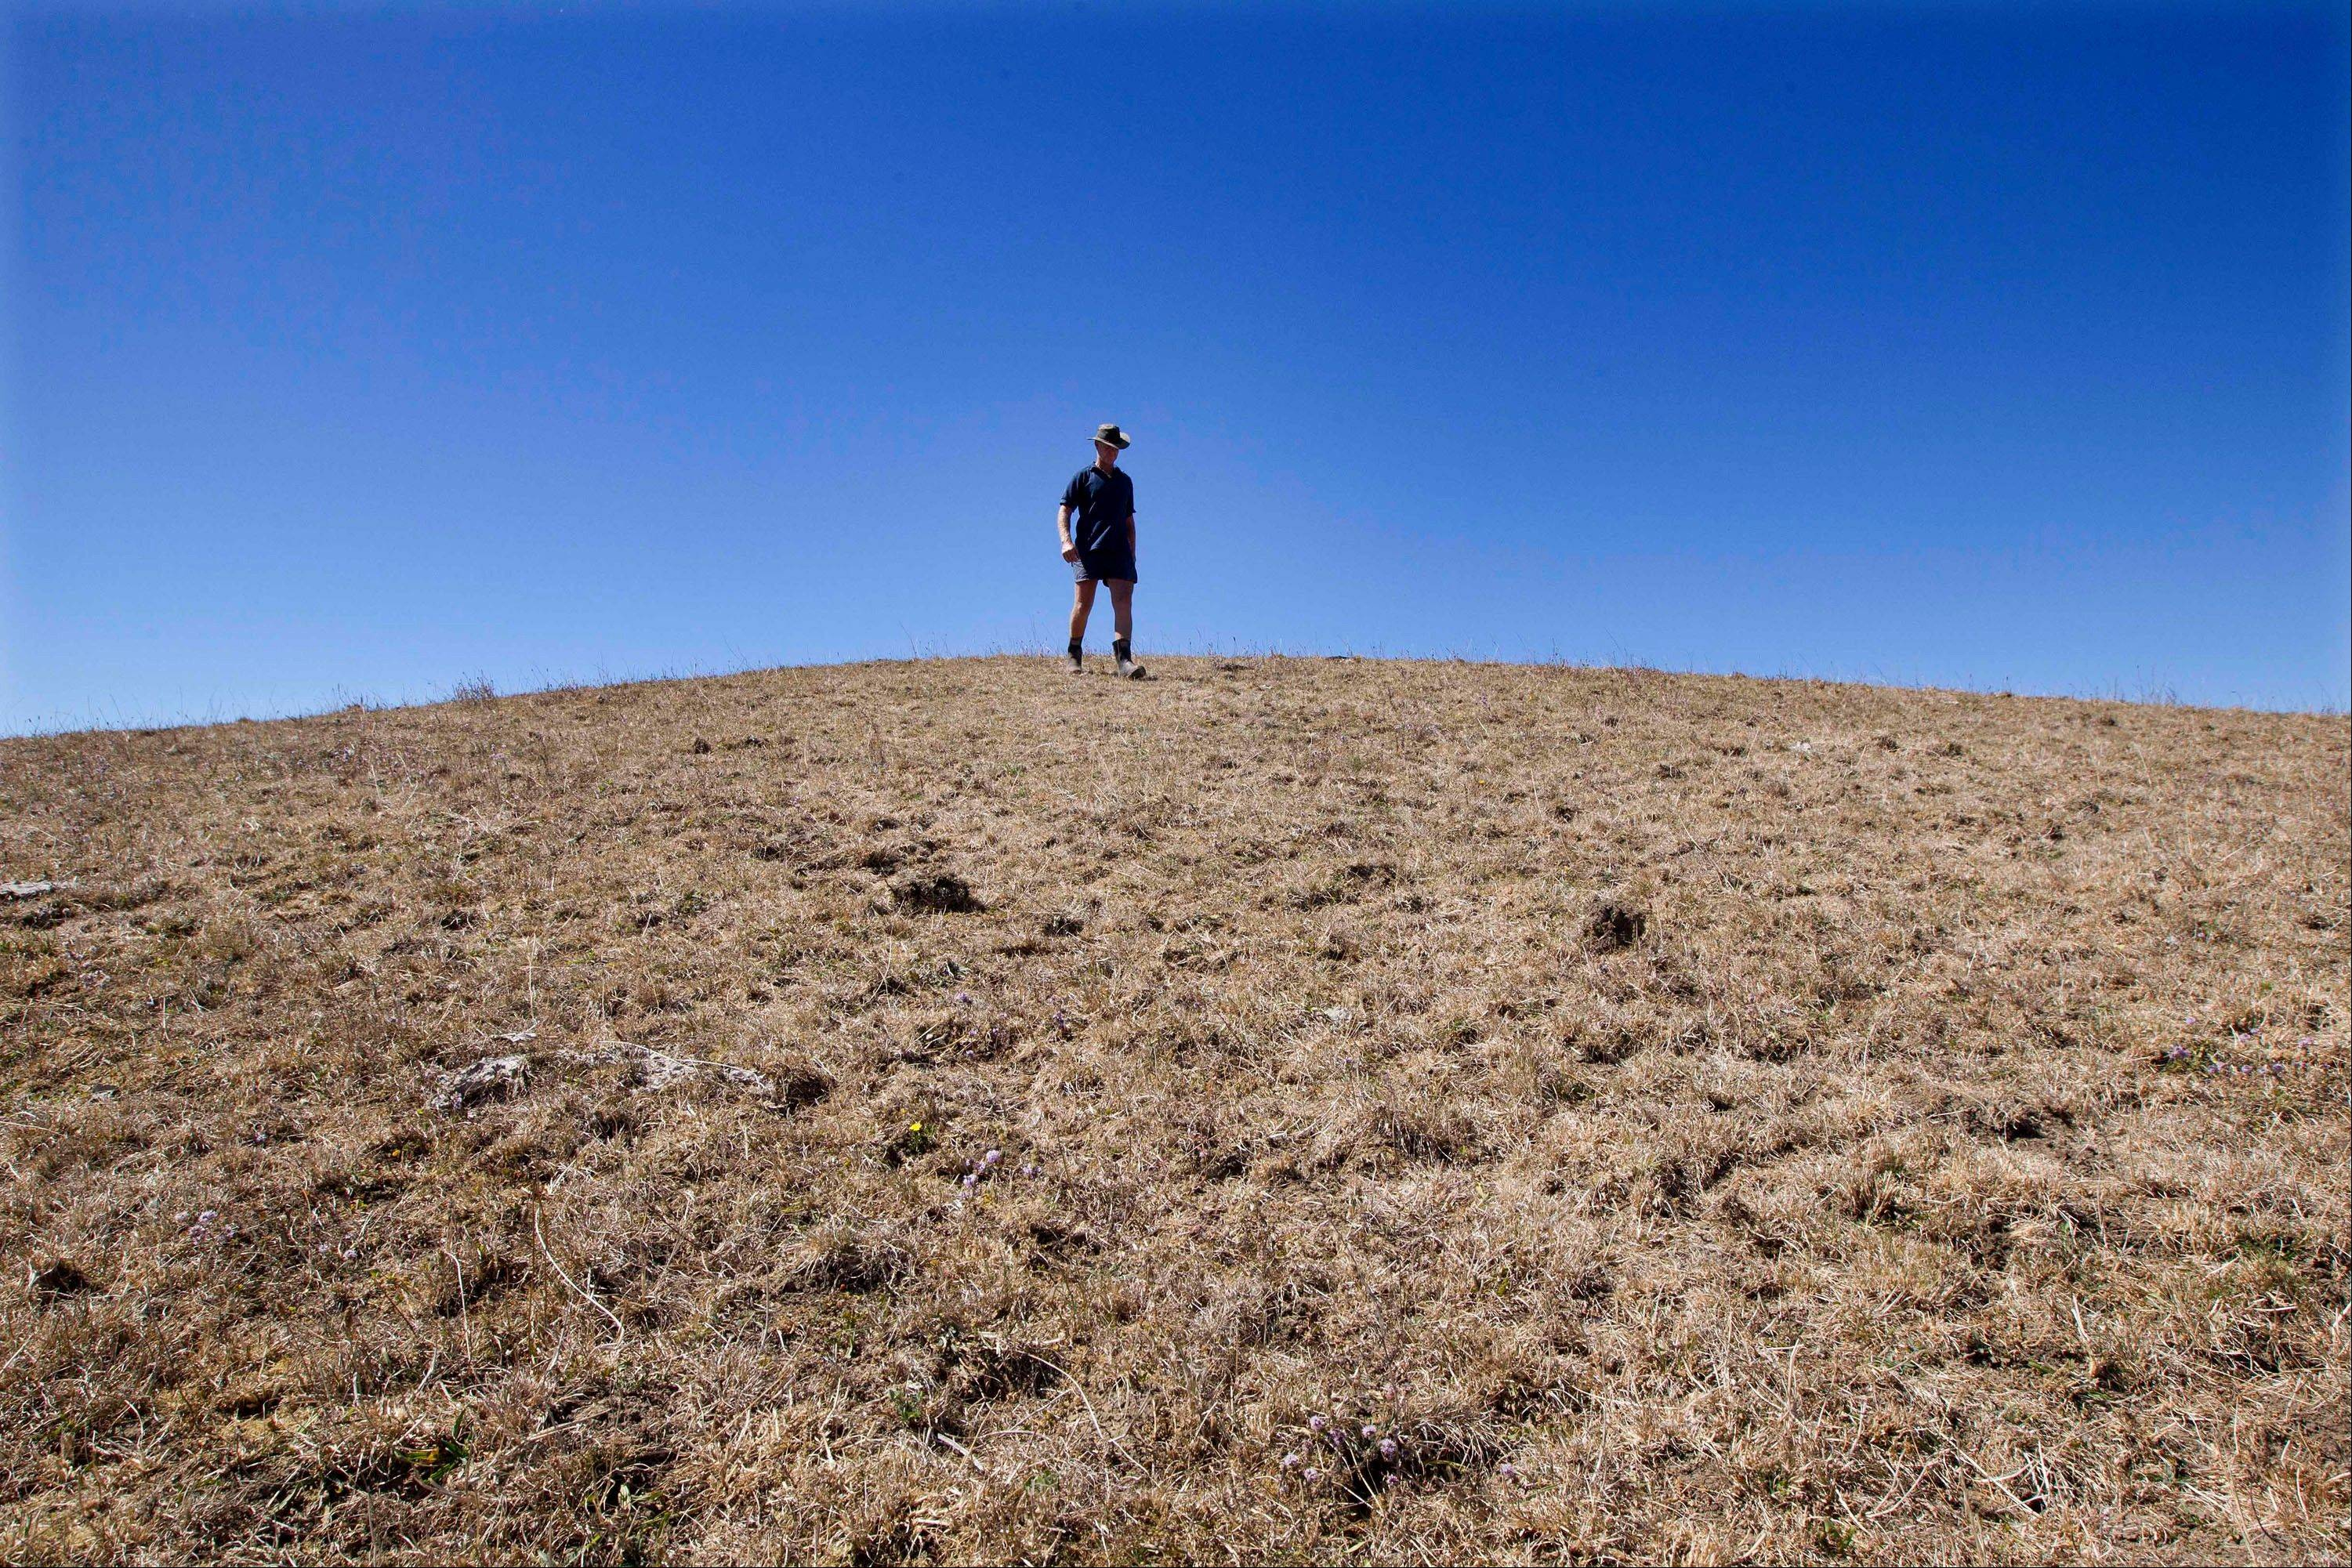 Farmer Peter Brown walks Monday on the dry ground on his dairy farm near Ohinewai, New Zealand.